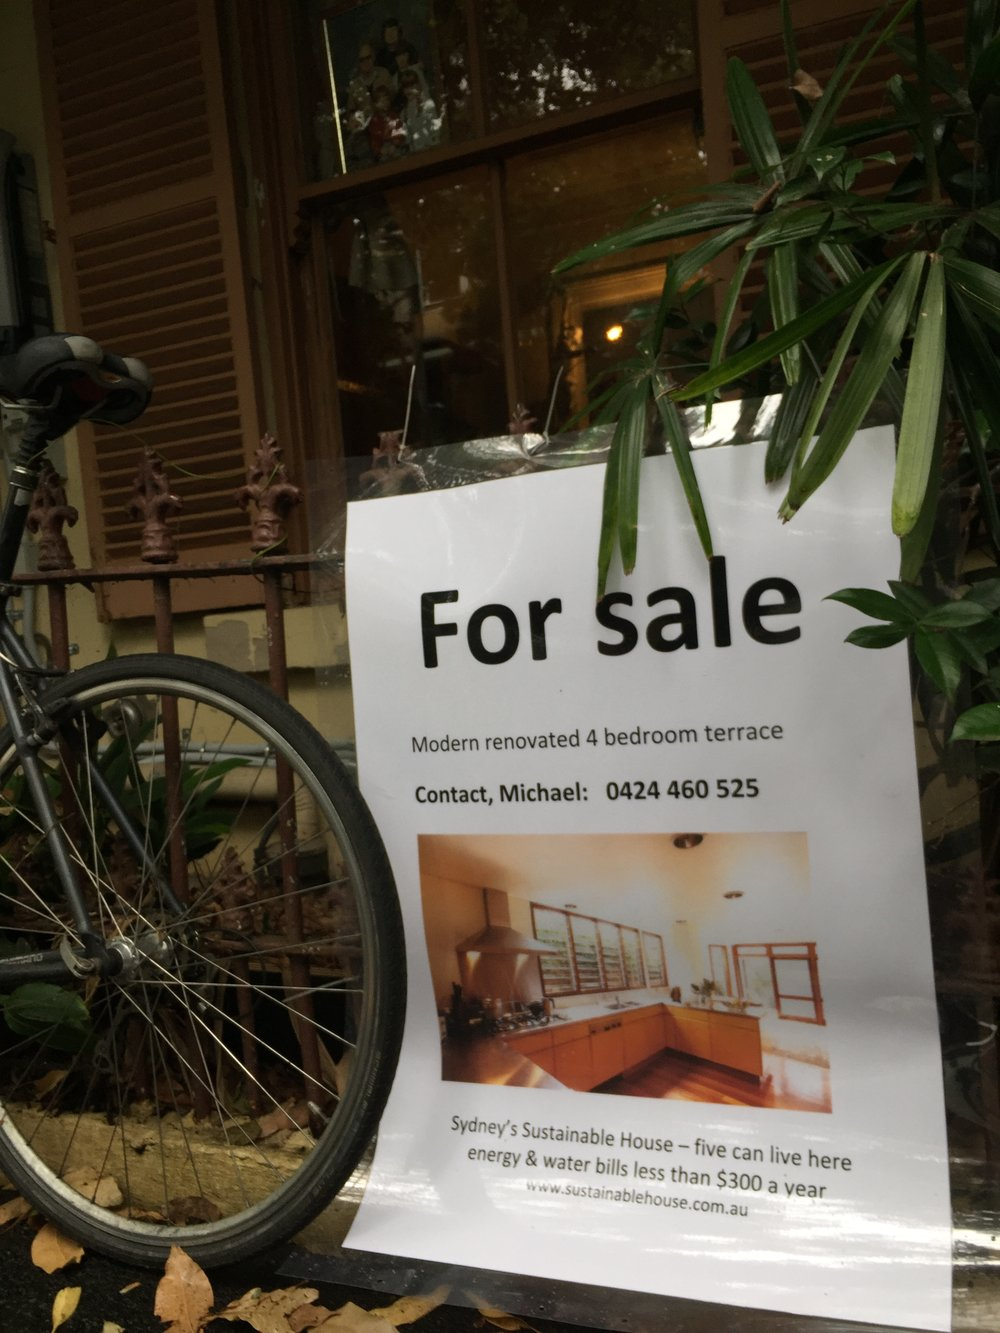 •   I'm selling it - there is no agent. Contact me: michael@sustainablehouse.com.au or 0424 460 525